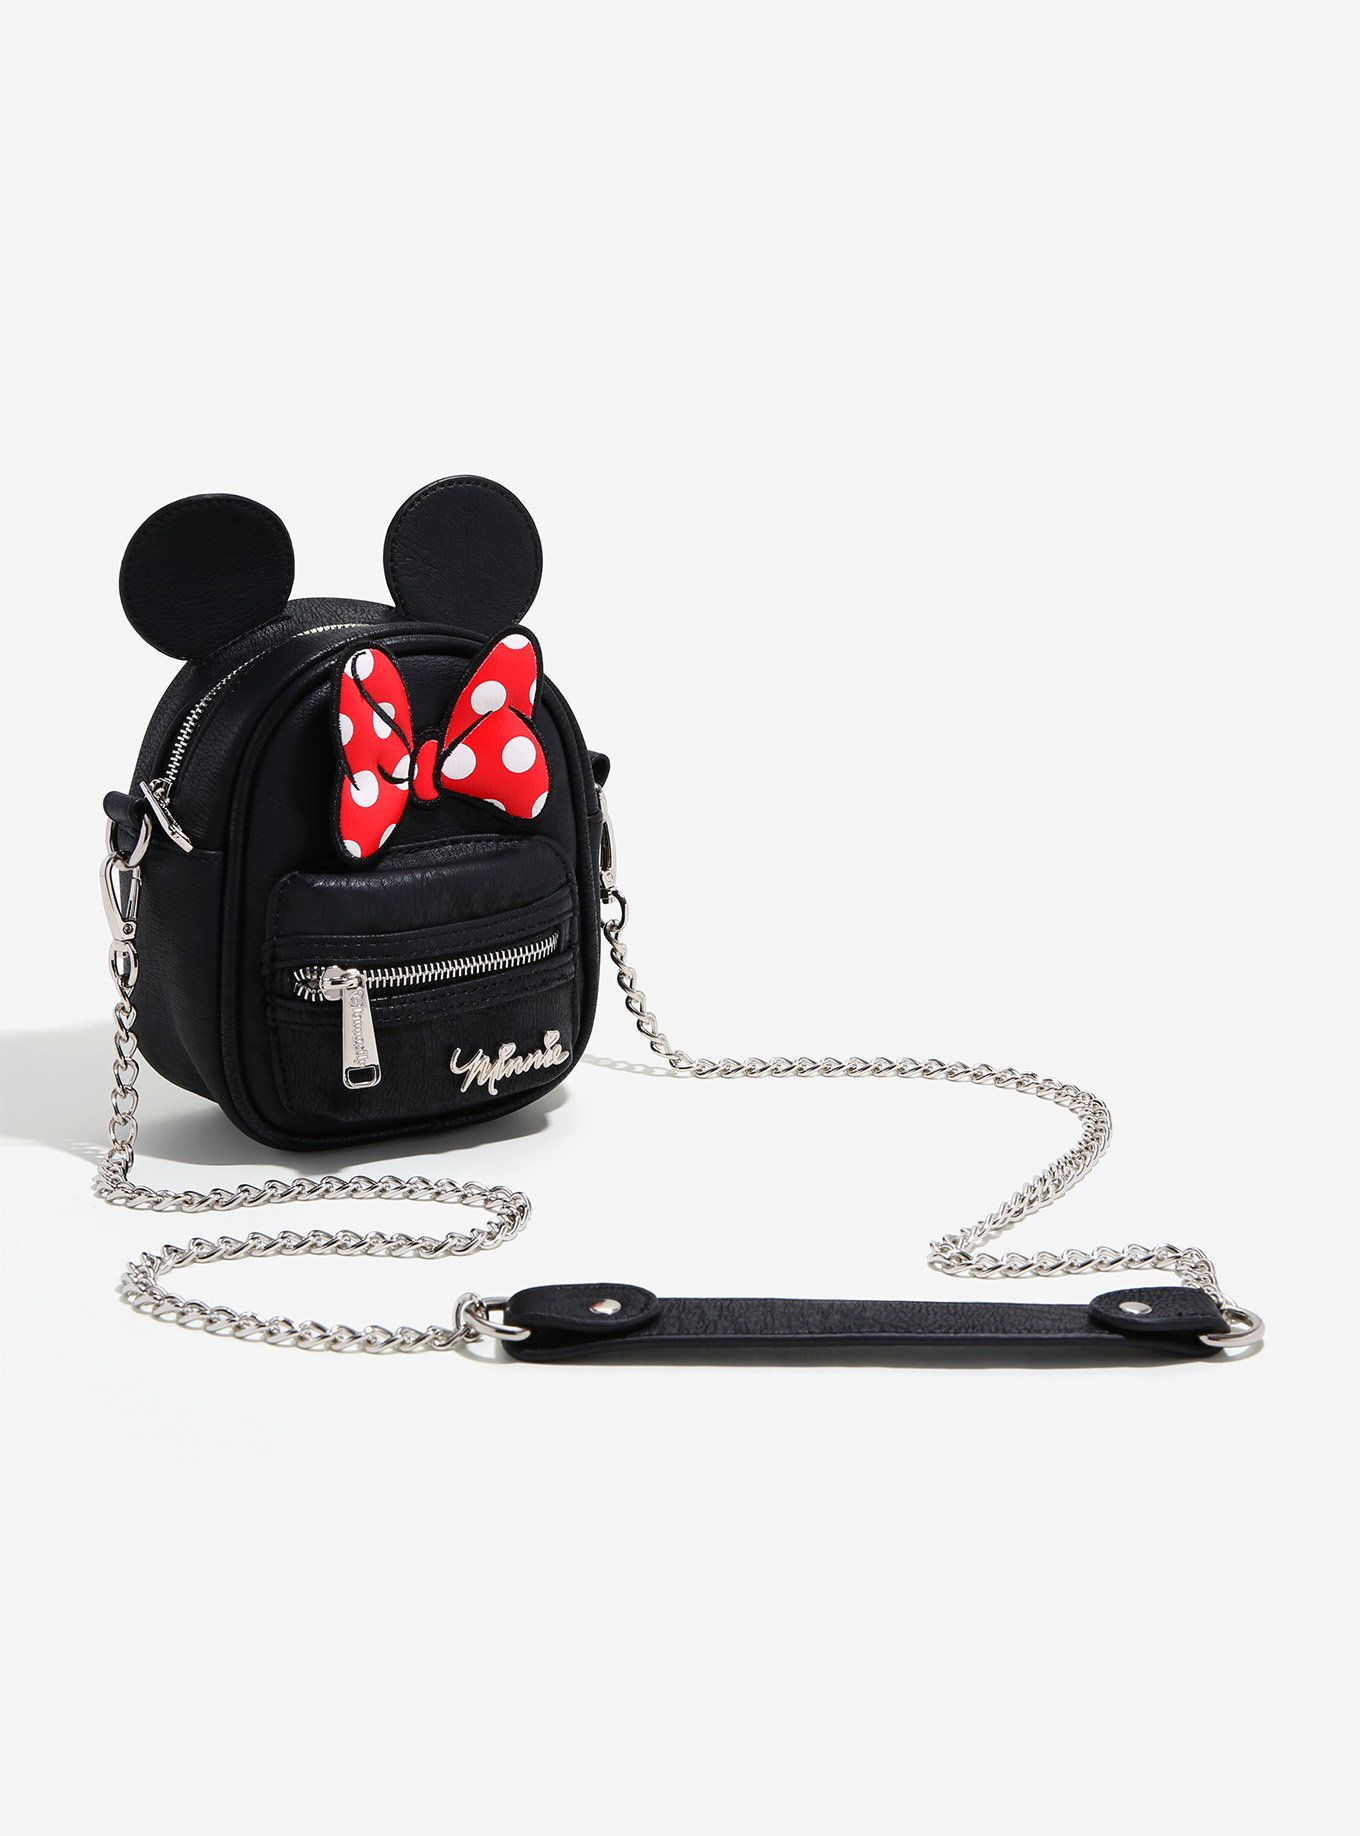 5b506bcb7bb7 Loungefly Disney Minnie Mouse Bow Ears Crossbody Bag - BoxLunch Exclusive,